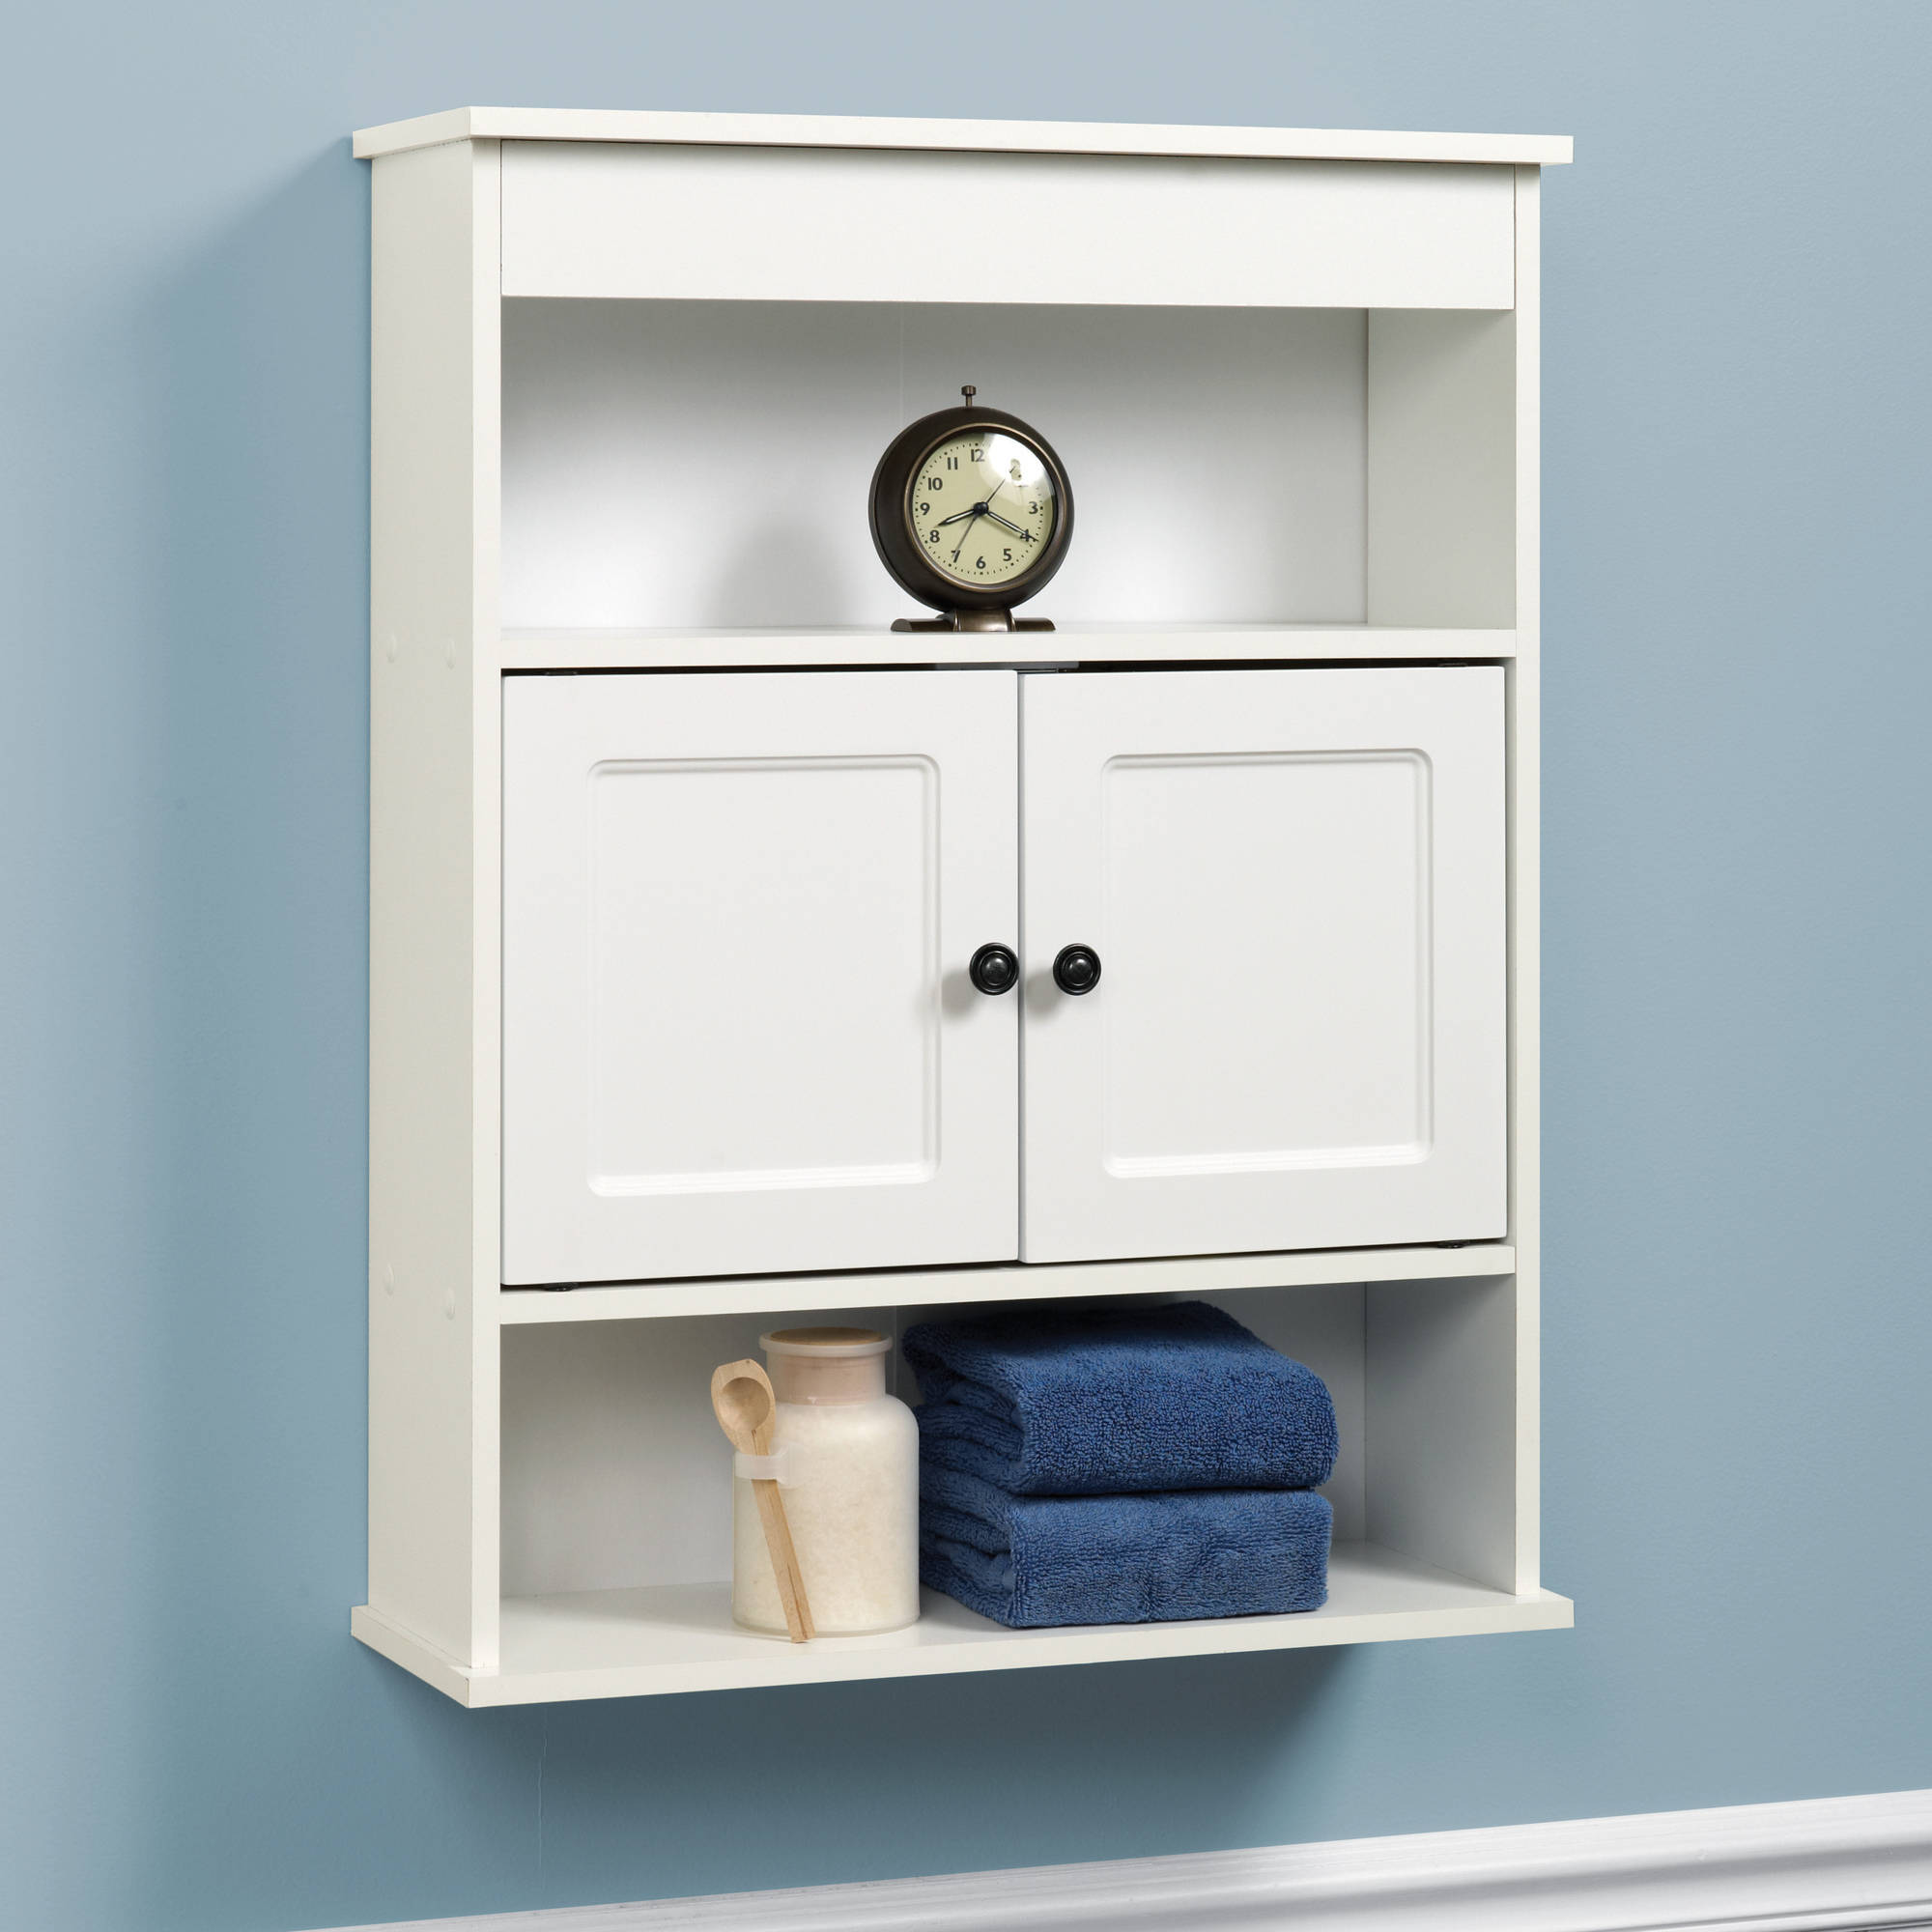 Cabinet Wall Bathroom Storage White Shelf Organizer Over Toilet Mount Towel Bath  eBay